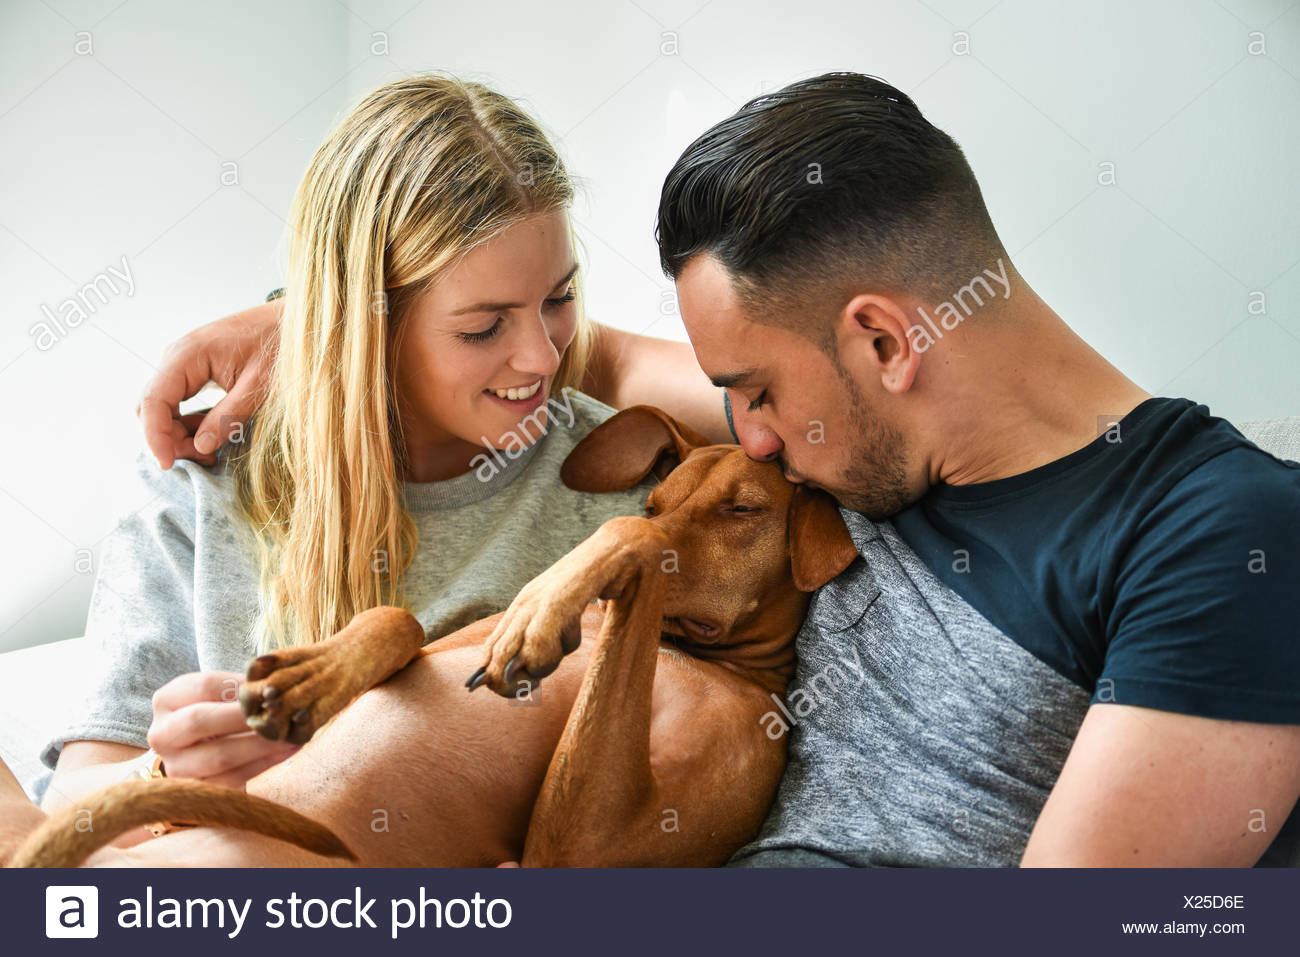 Close-up of man kissing dog with girlfriend - Stock Image